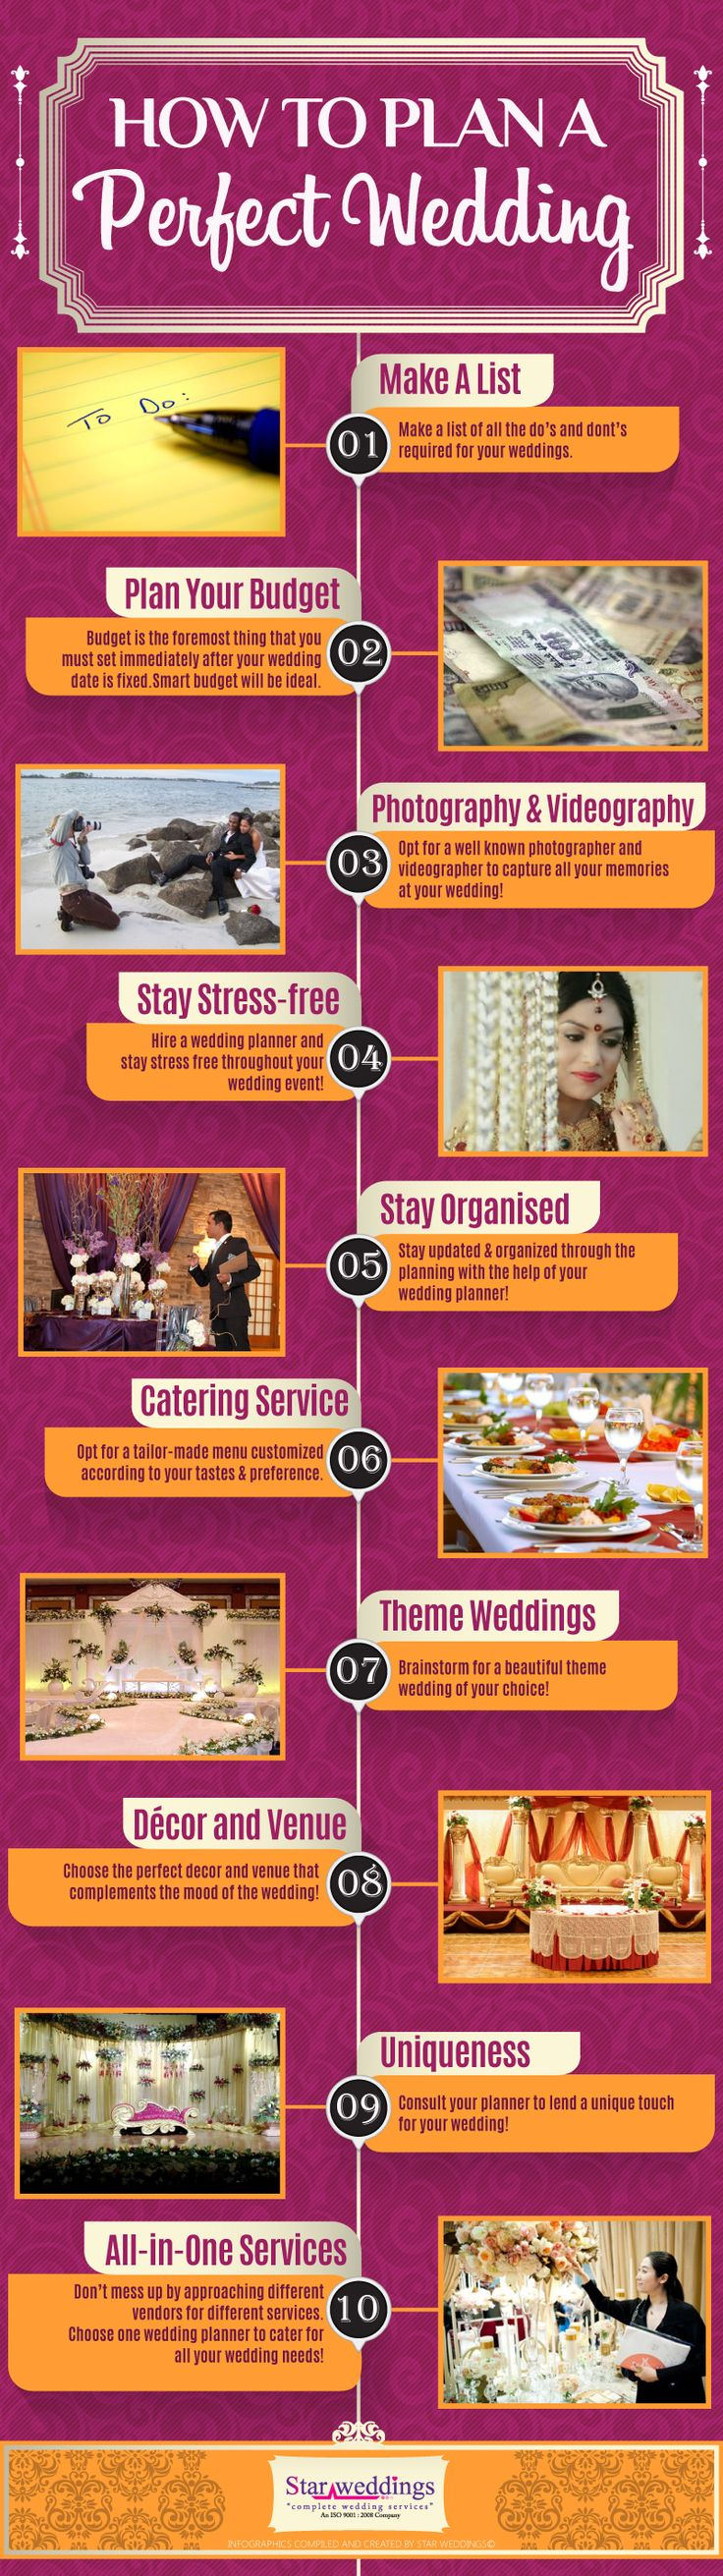 100+ best Star Weddings Chennai images on Pinterest | Chennai, Star ...